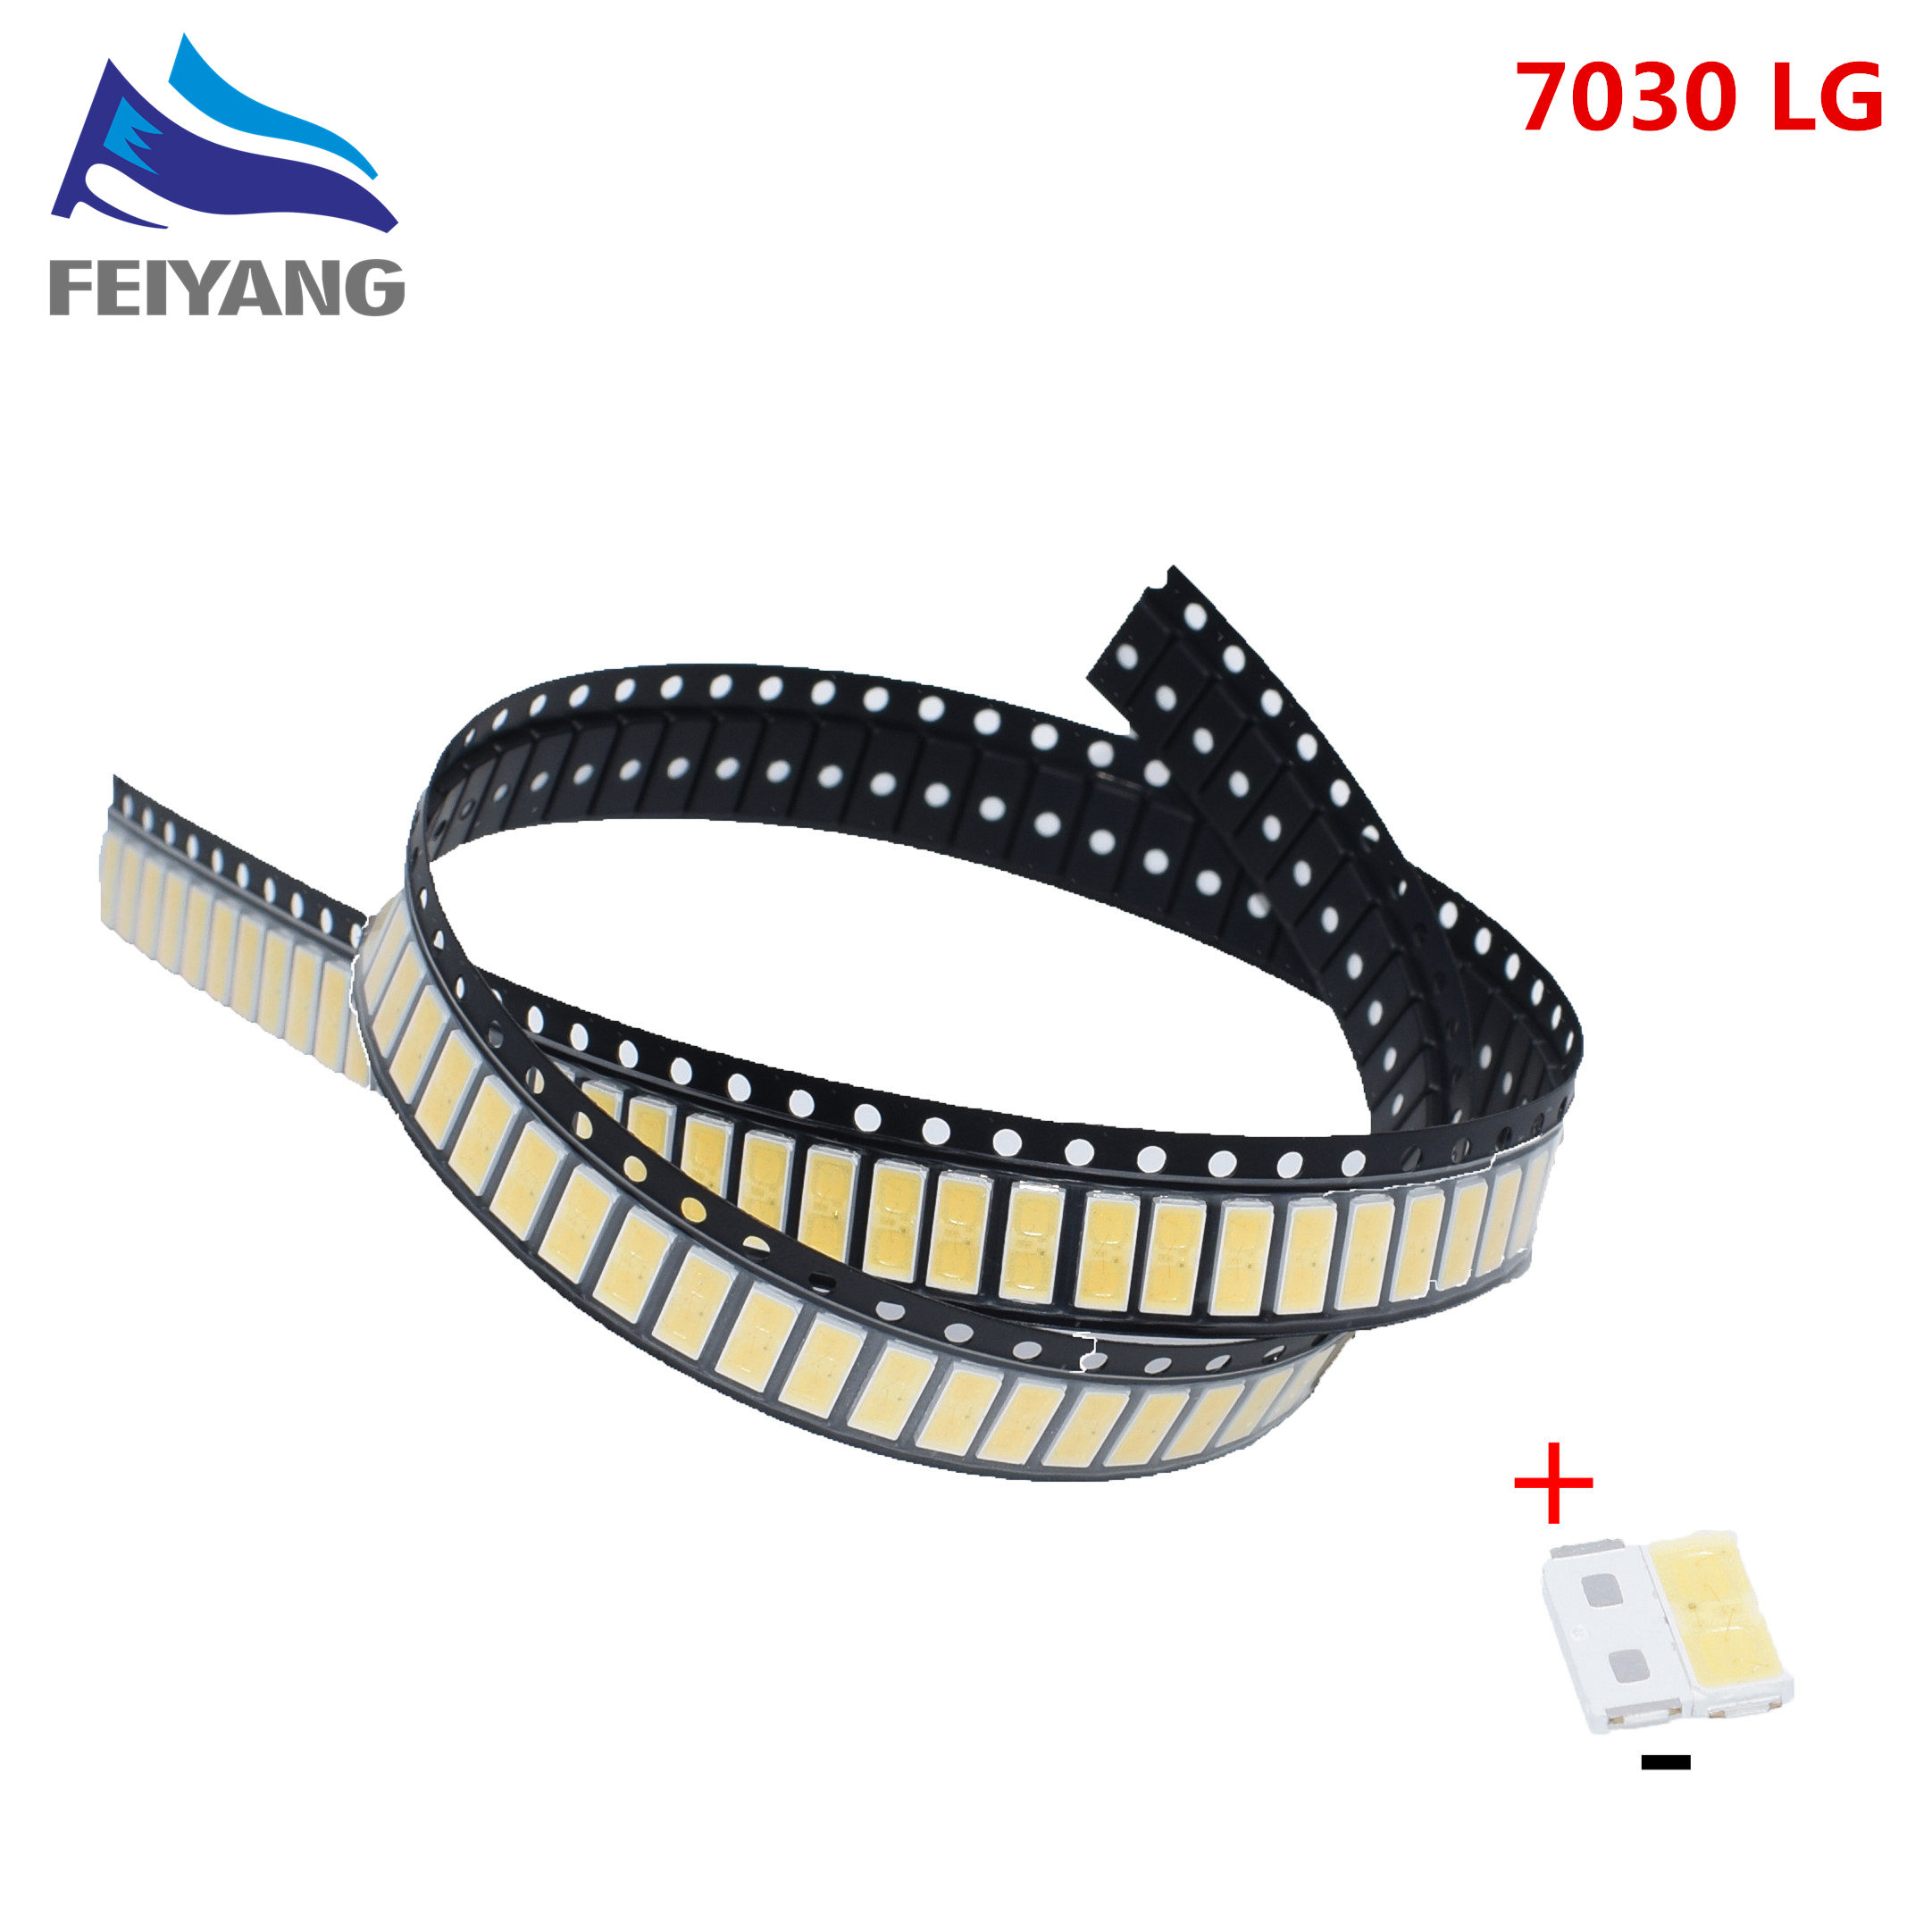 500pcs For <font><b>LG</b></font> Original <font><b>LED</b></font> LCD <font><b>TV</b></font> Backlight Application <font><b>LED</b></font> 7030 light-emitting Light Beads Cool white High Power <font><b>1W</b></font> <font><b>6V</b></font> image